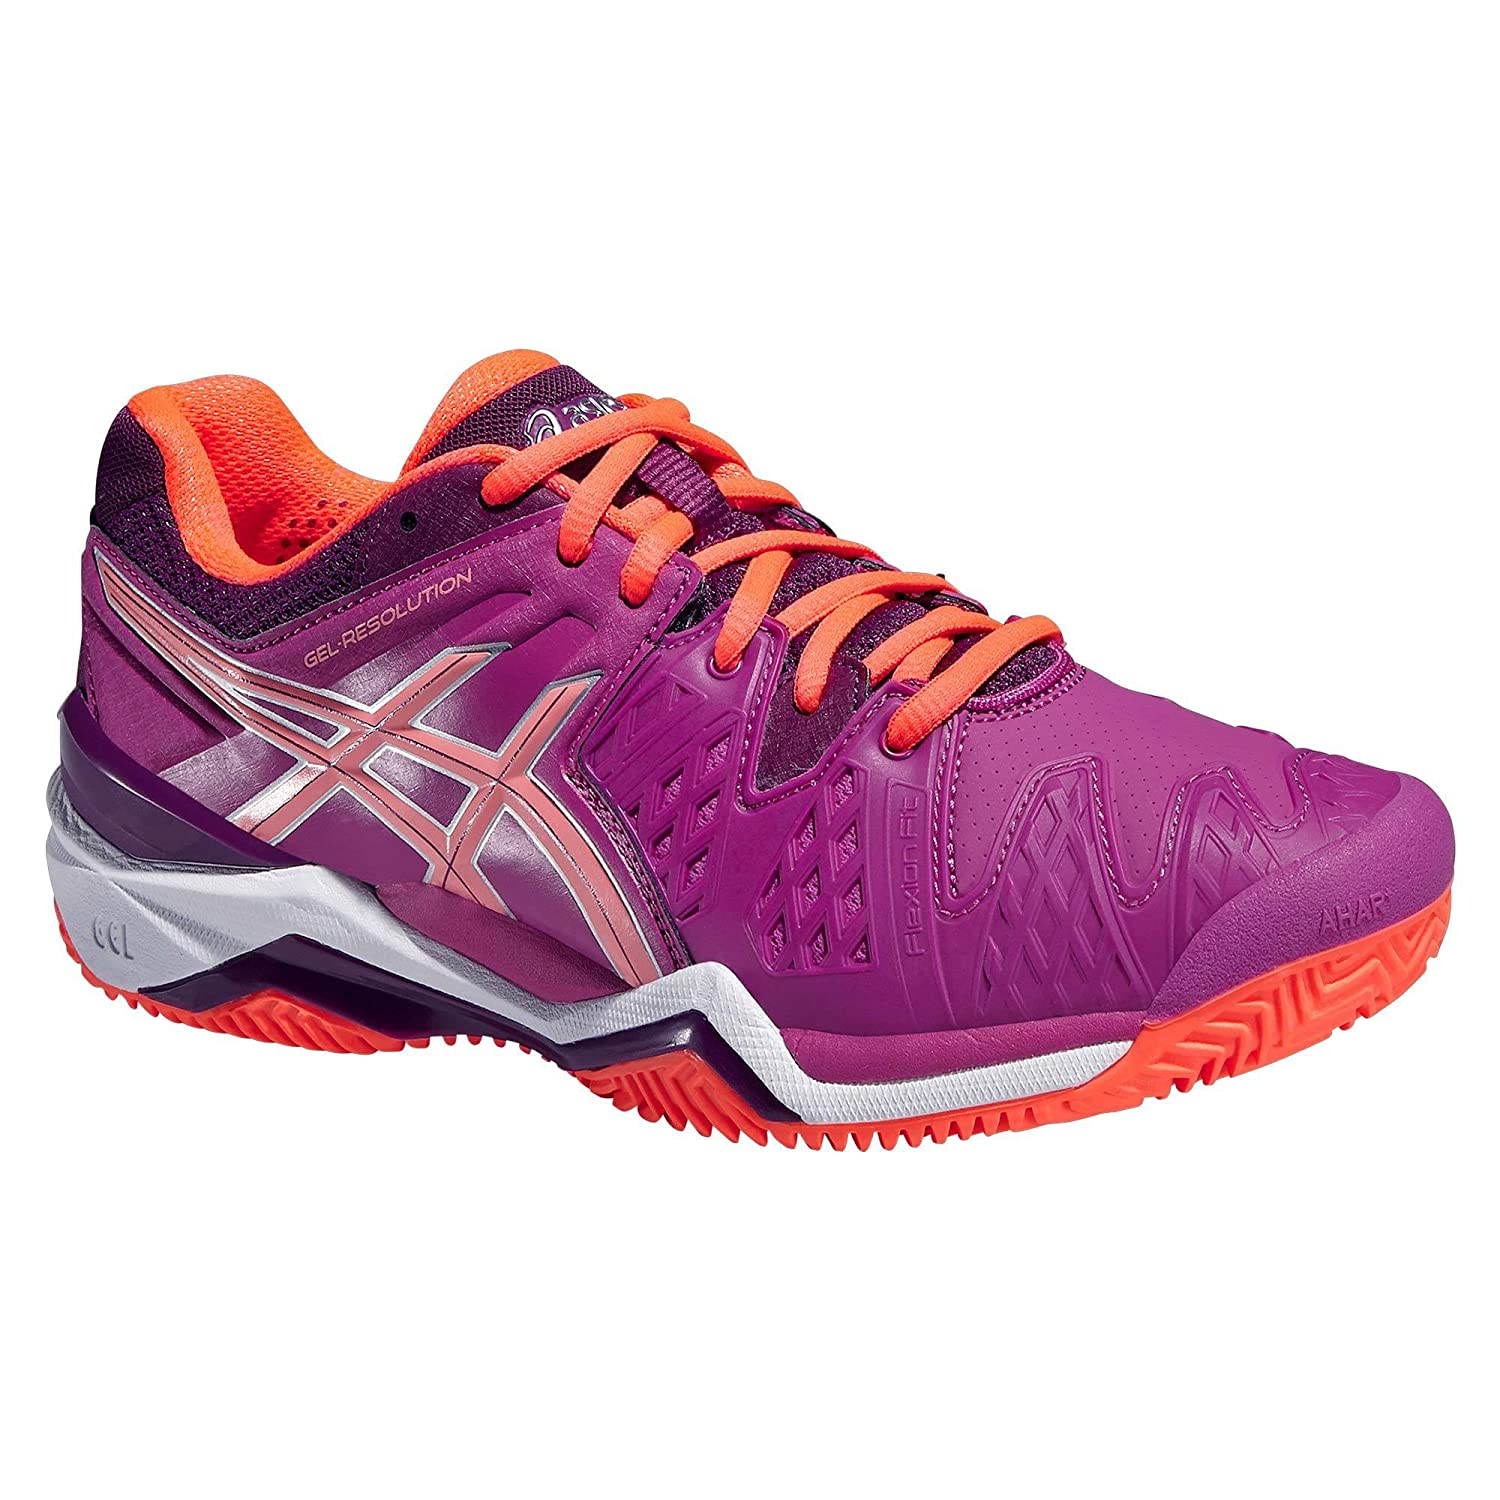 Chaussures Femme Asics Gel-resolution 6 Clay